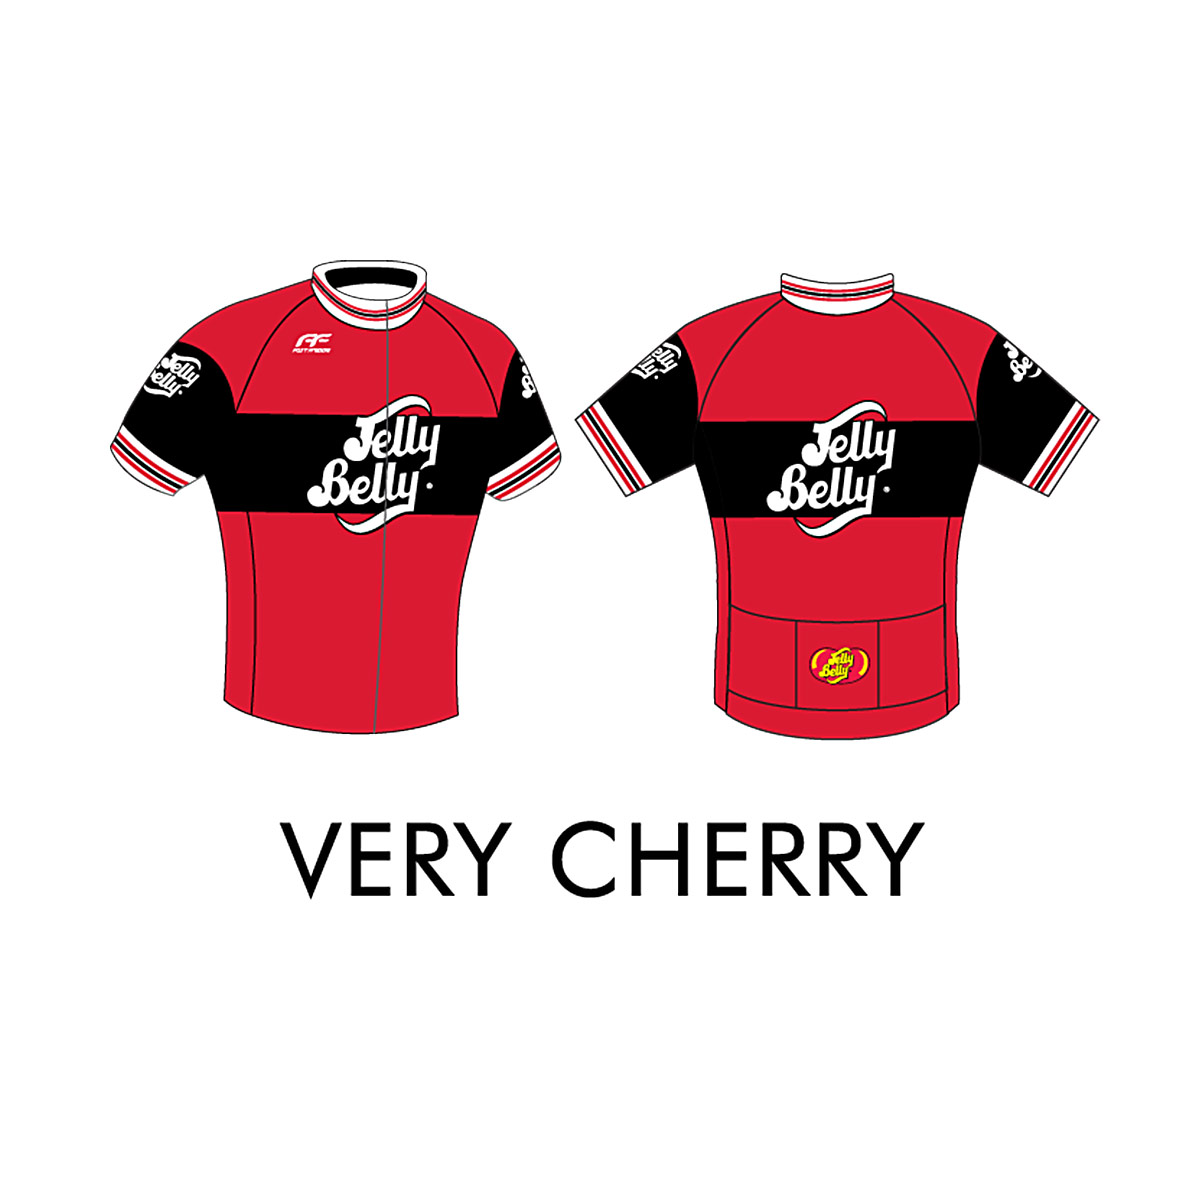 Jelly Belly Very Cherry Retro Cycling Jersey - Adult - Extra Small